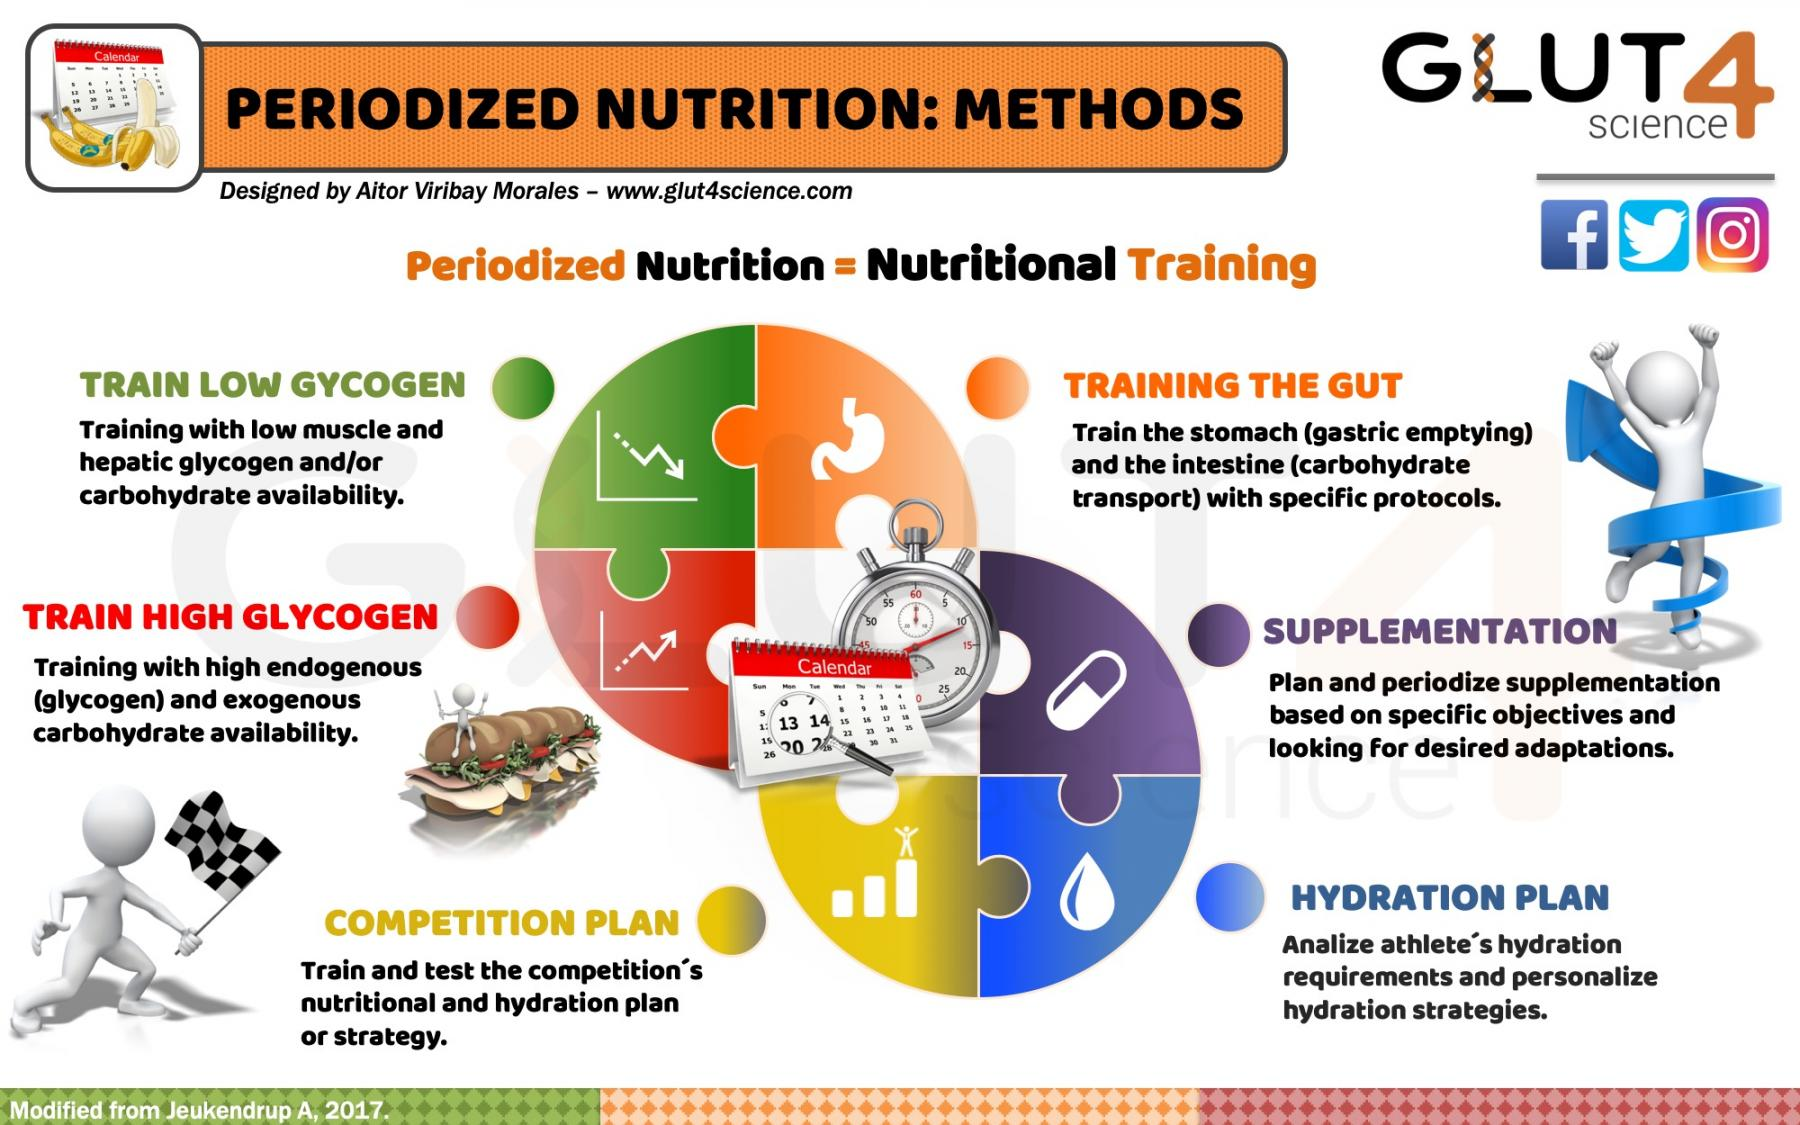 Methods of periodized nutrition in sport.